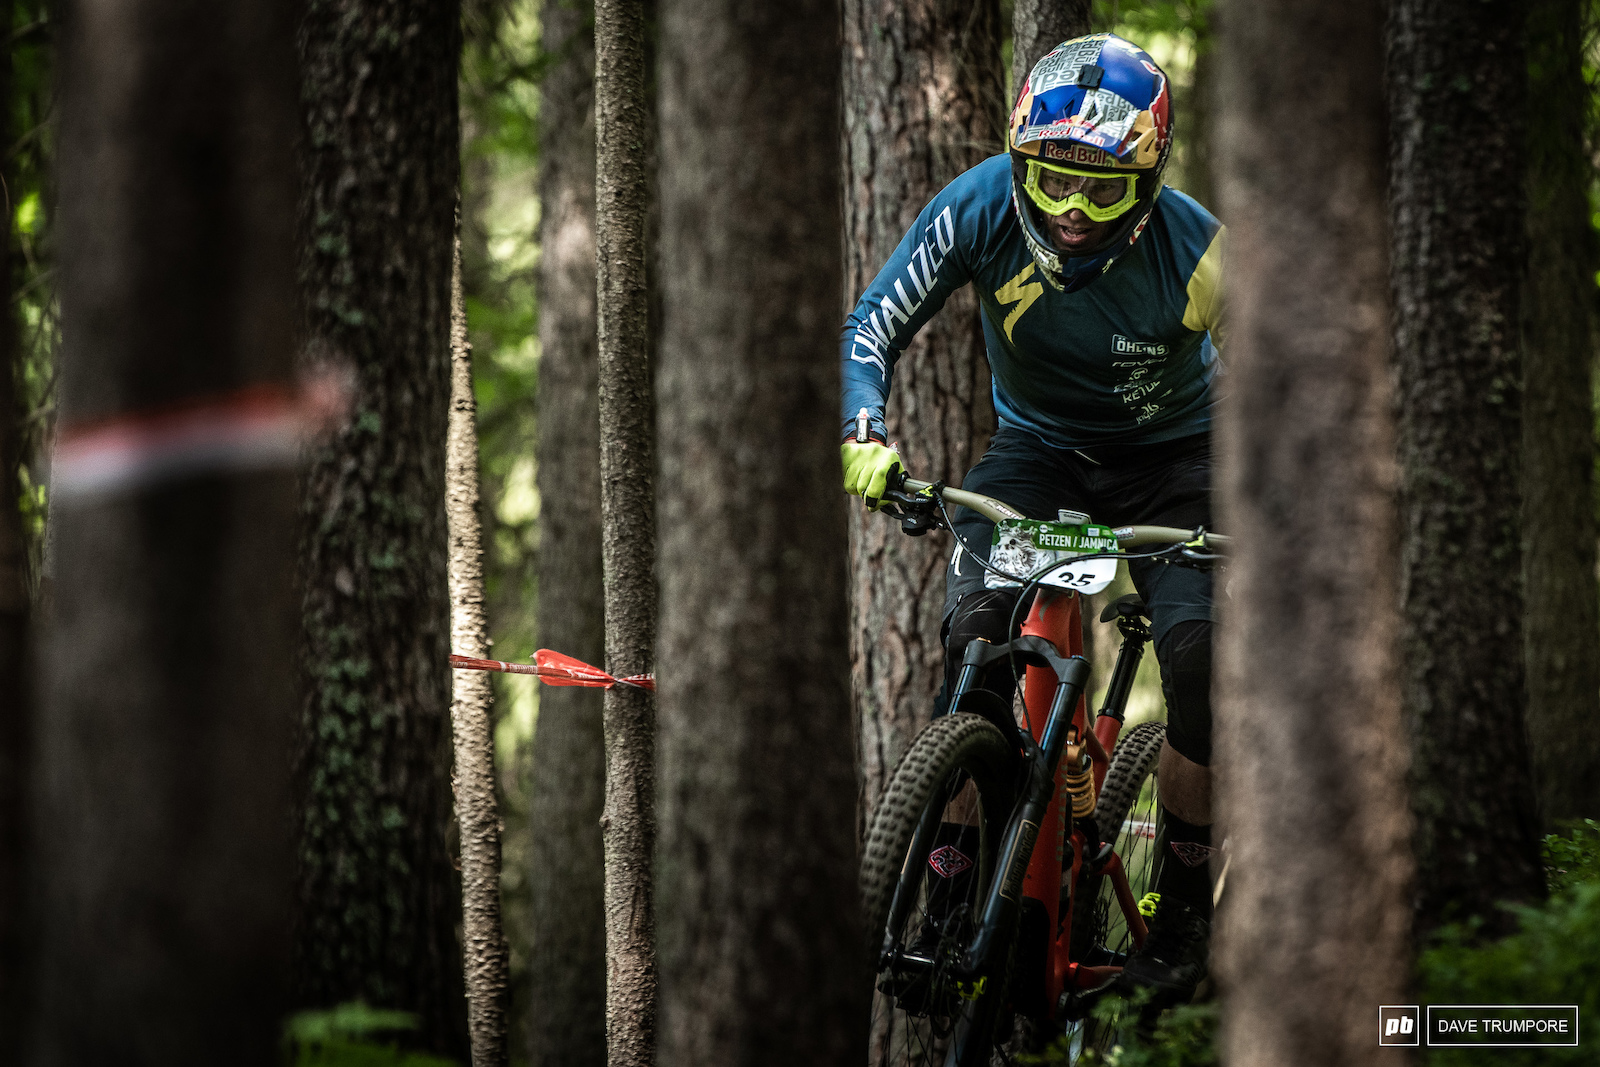 Curtis Keen navigates the tight trees at the top of Stage 1.